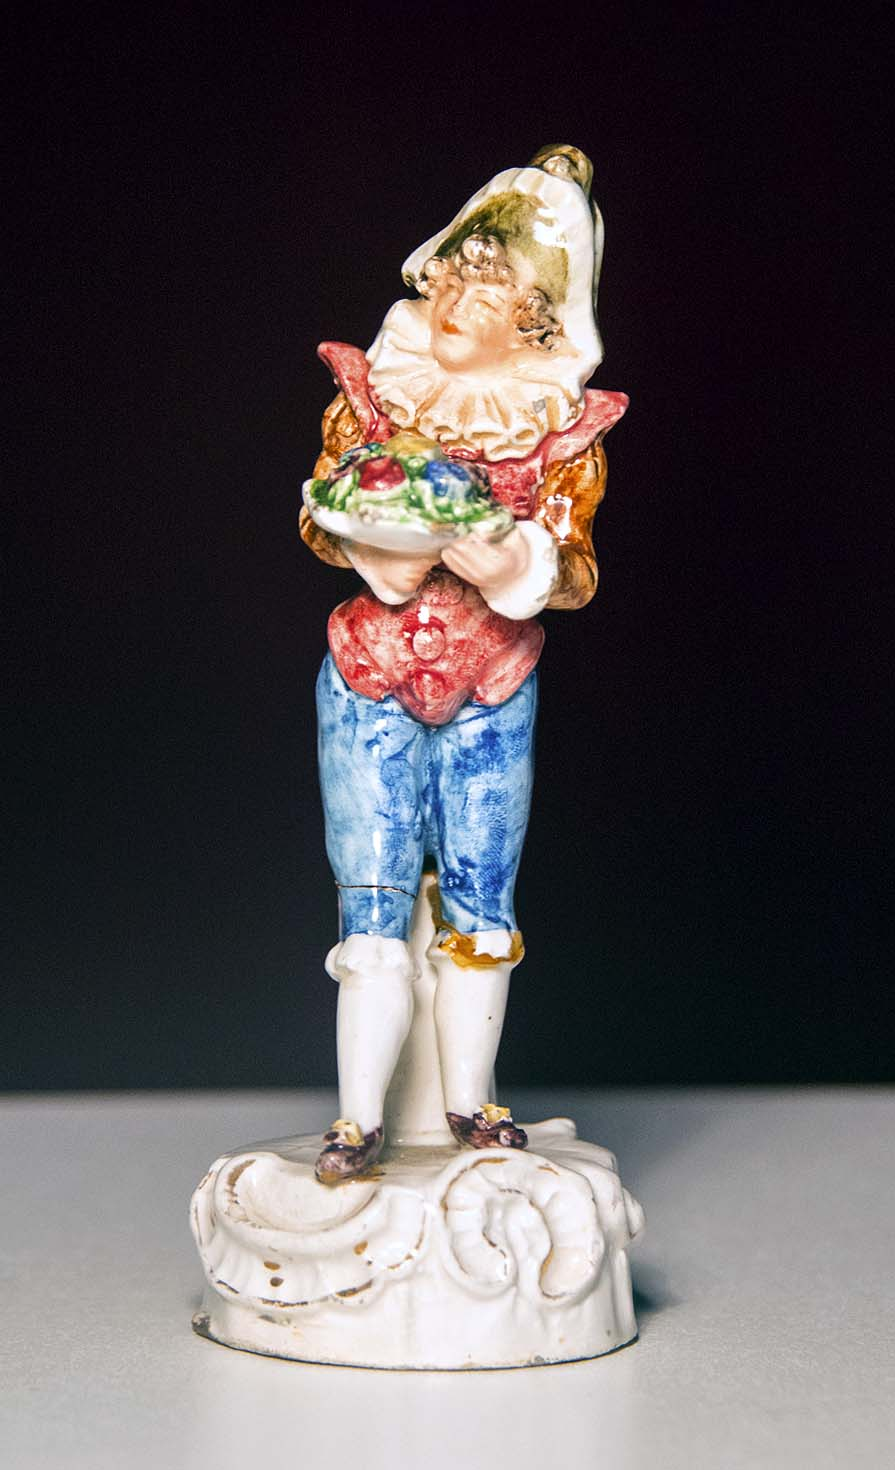 A Fine Chap - a wonderful figurine with numbers Boy_fi12